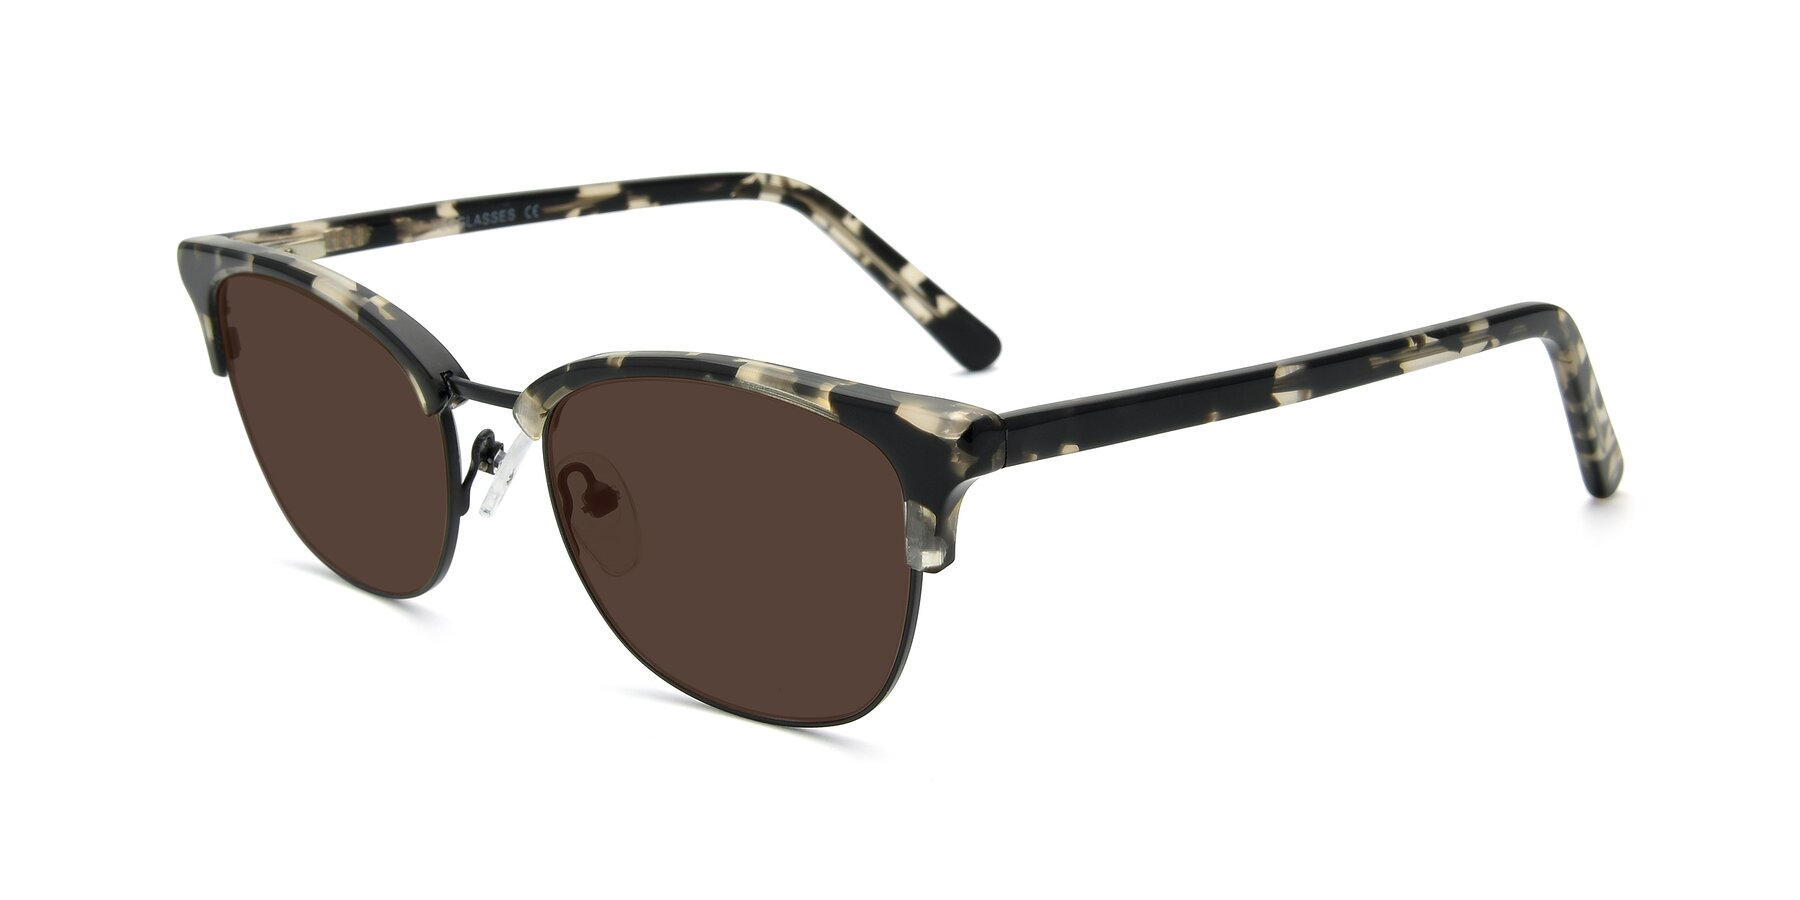 Angle of 17463 in Black-Tortoise with Brown Tinted Lenses